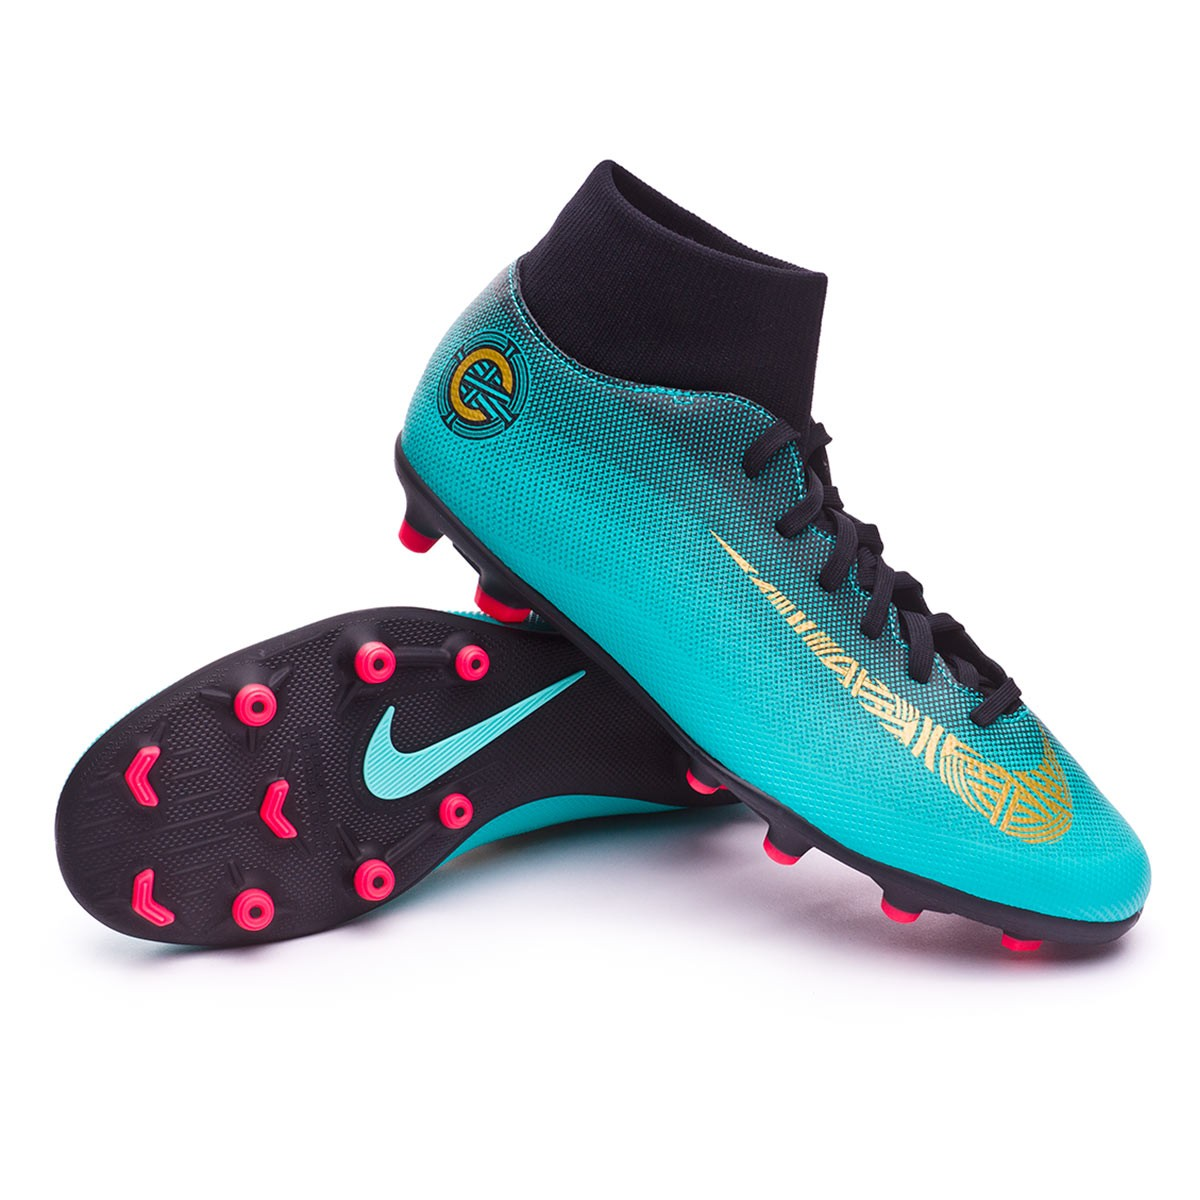 Mg Jade Club Cr7 Superfly Zapatos De Vi Fútbol Mercurial Clear Nike Y4nYvaB8Z